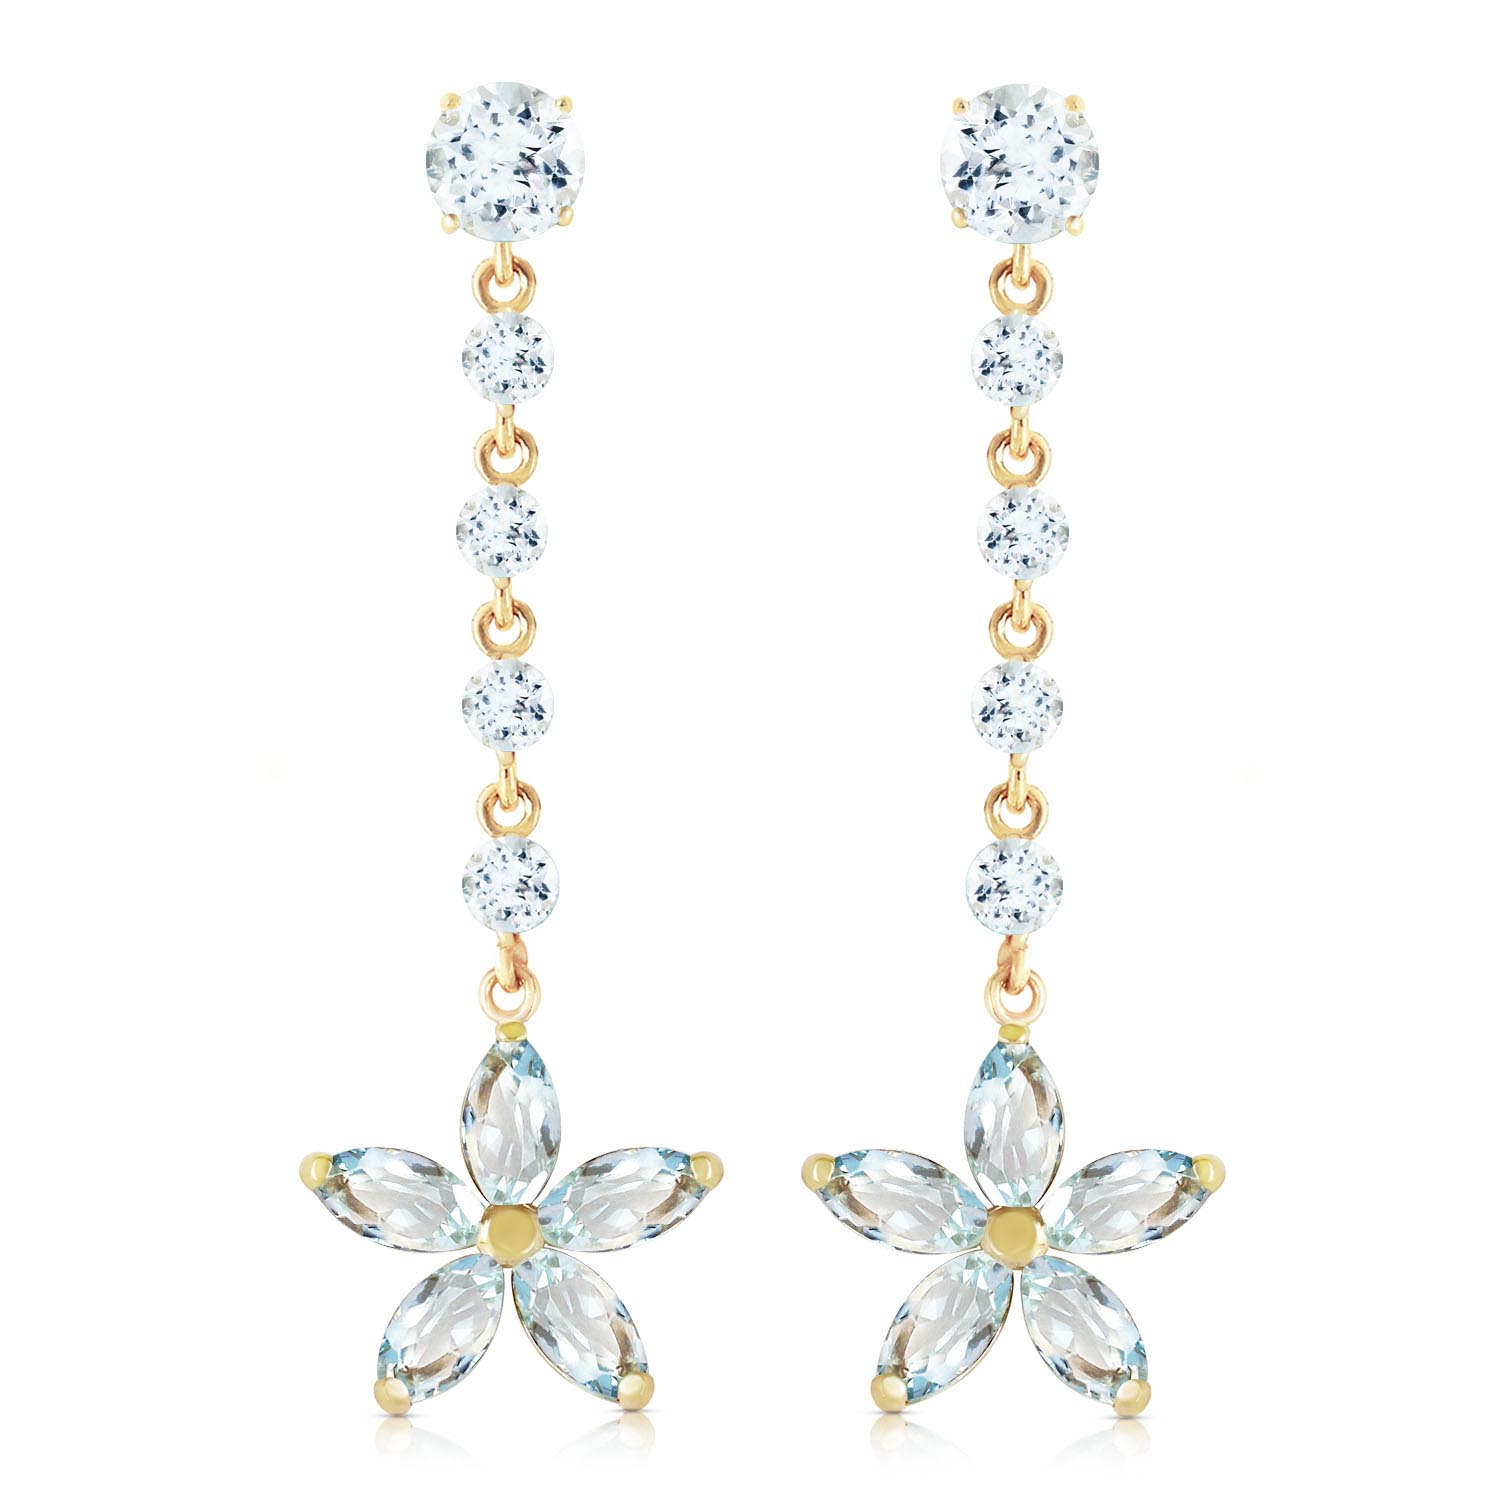 Aquamarine Daisy Chain Drop Earrings 4.8ctw in 9ct Gold